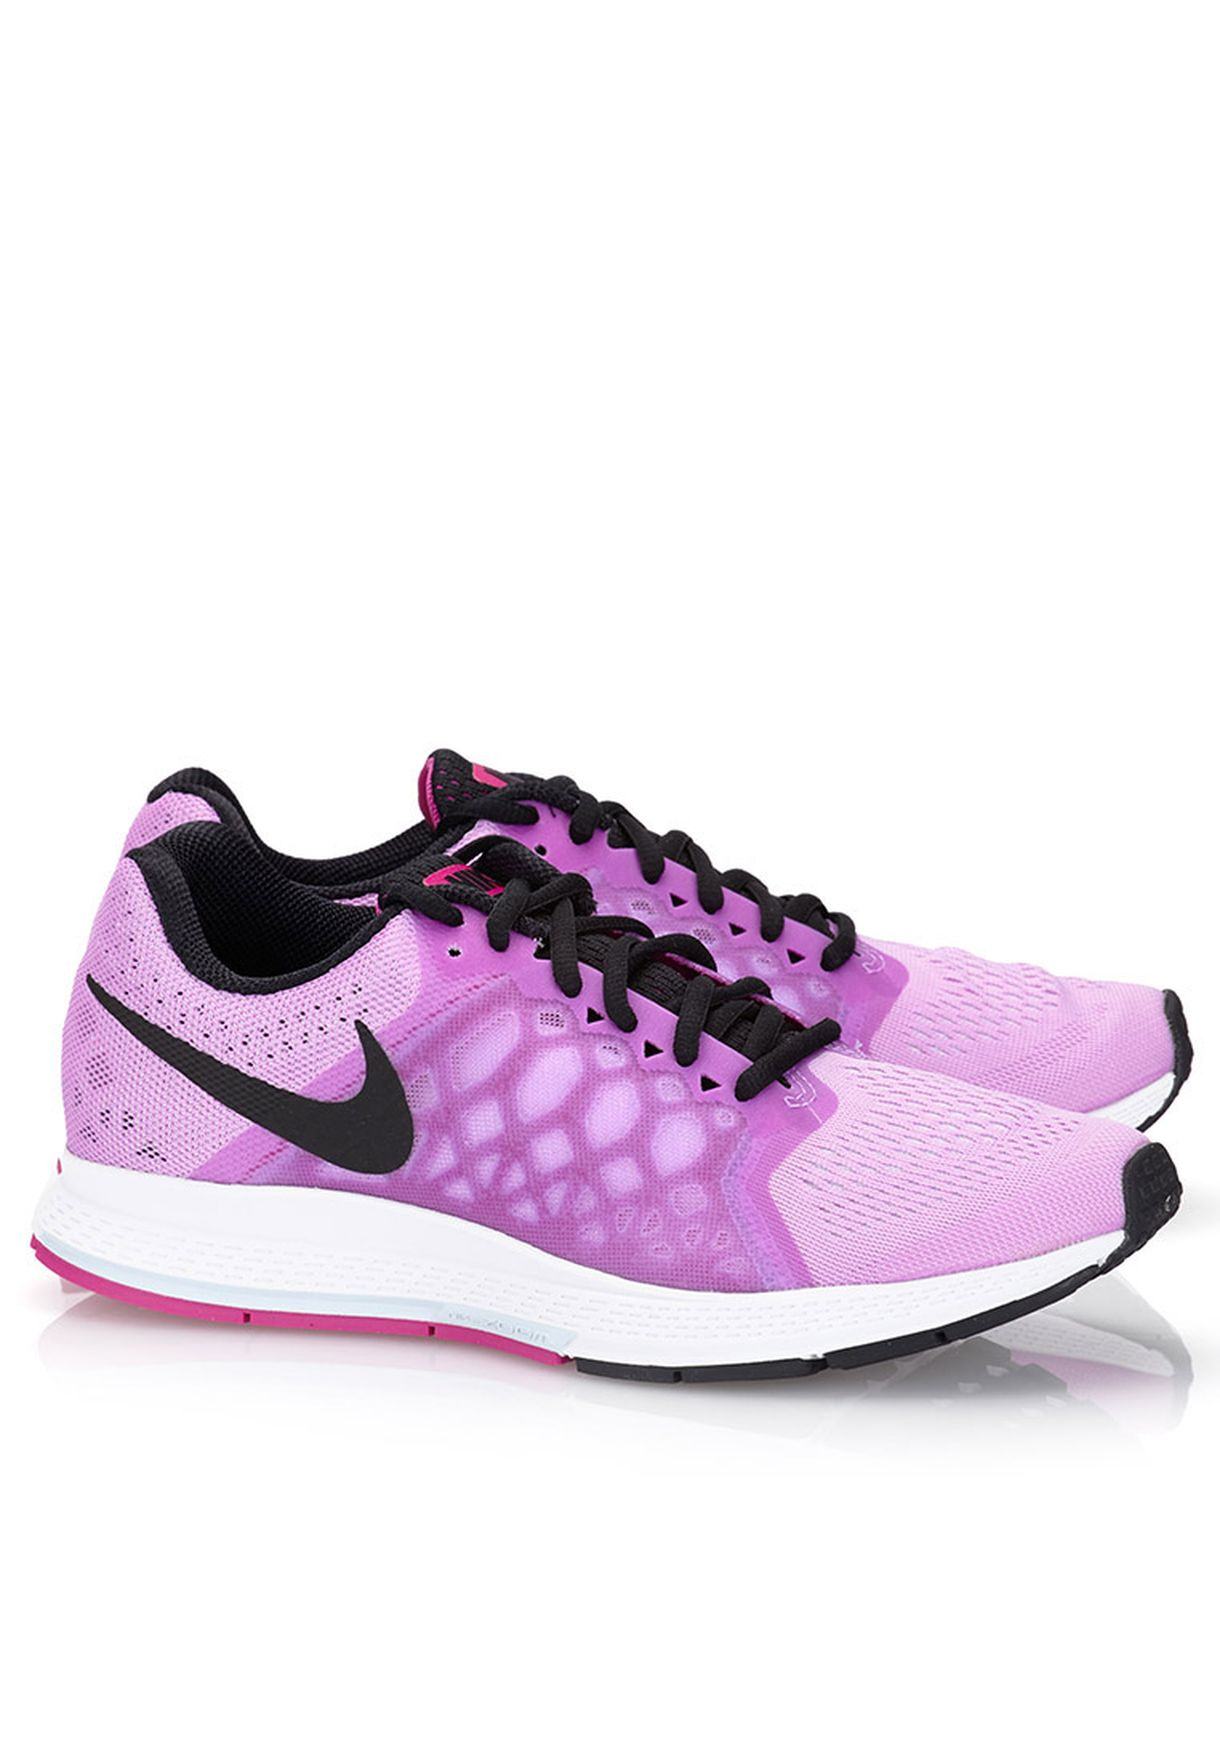 online store 2a0af 7b989 Shop Nike purple Zoom Pegasus 31 654486-502 for Women in Globally ...